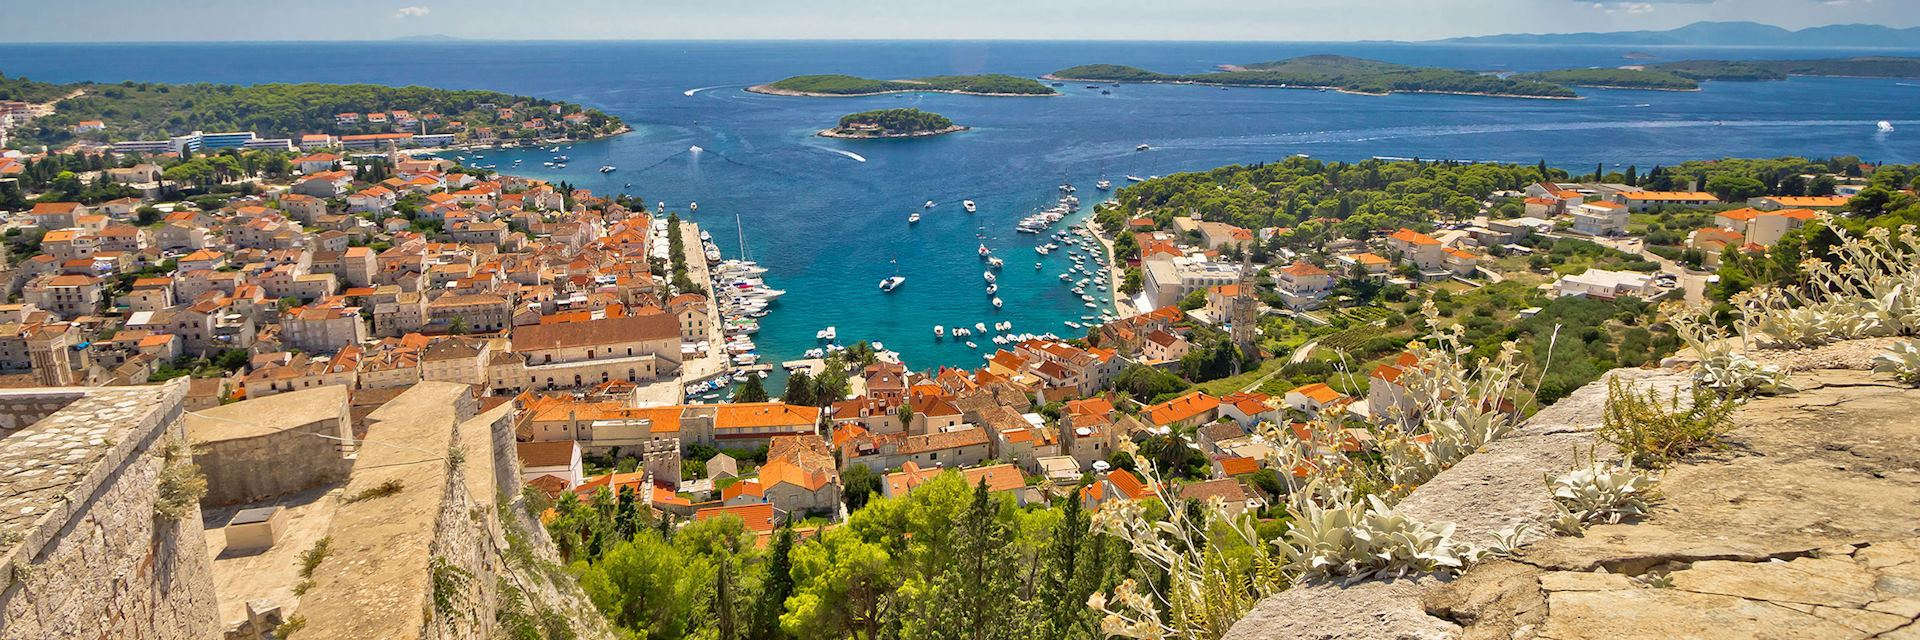 Hvar and Paklinski islands